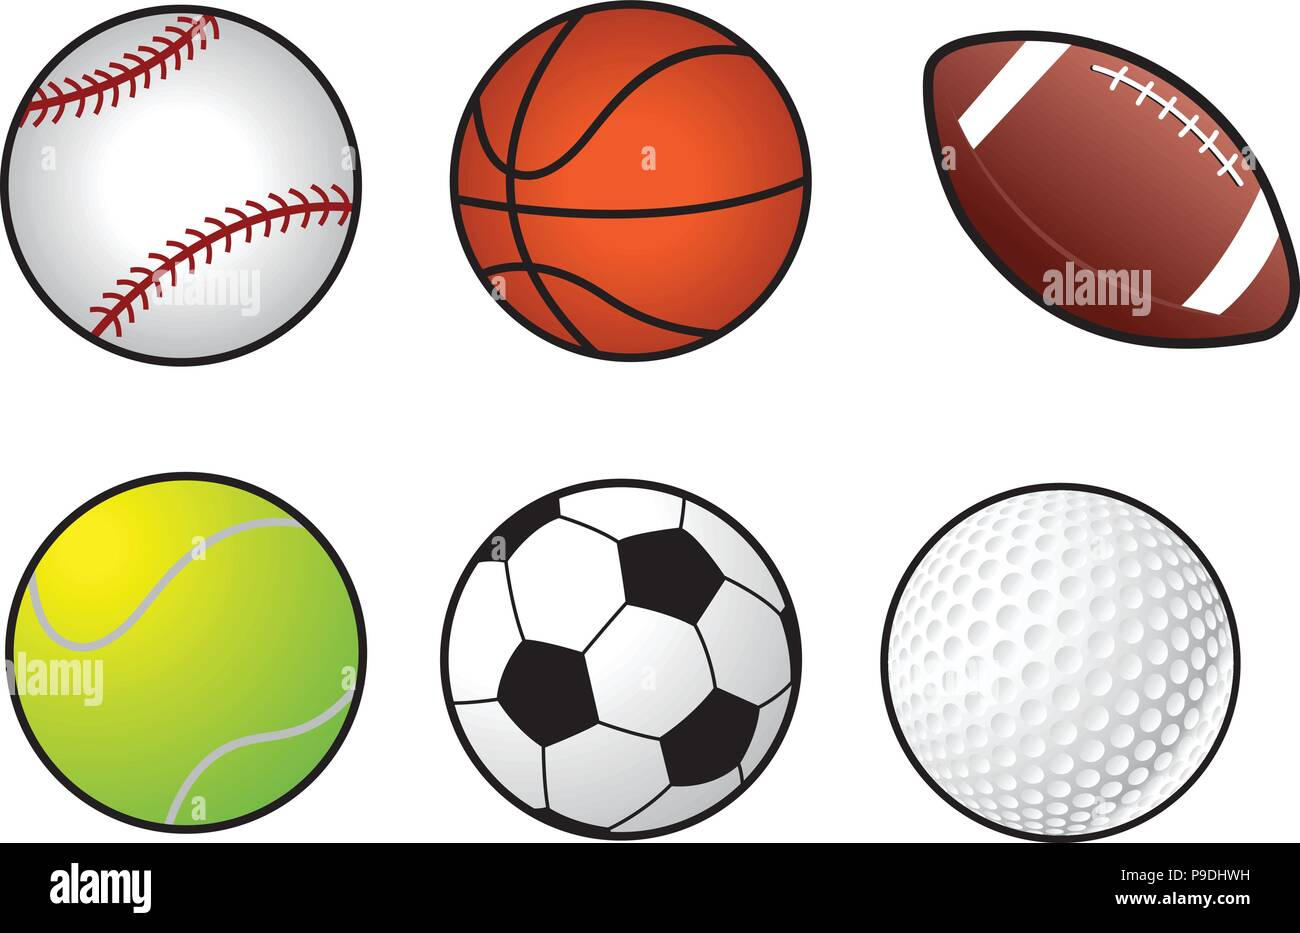 Cartoon Vector Illustration Of A Sports Balls Stock Vector Image Art Alamy